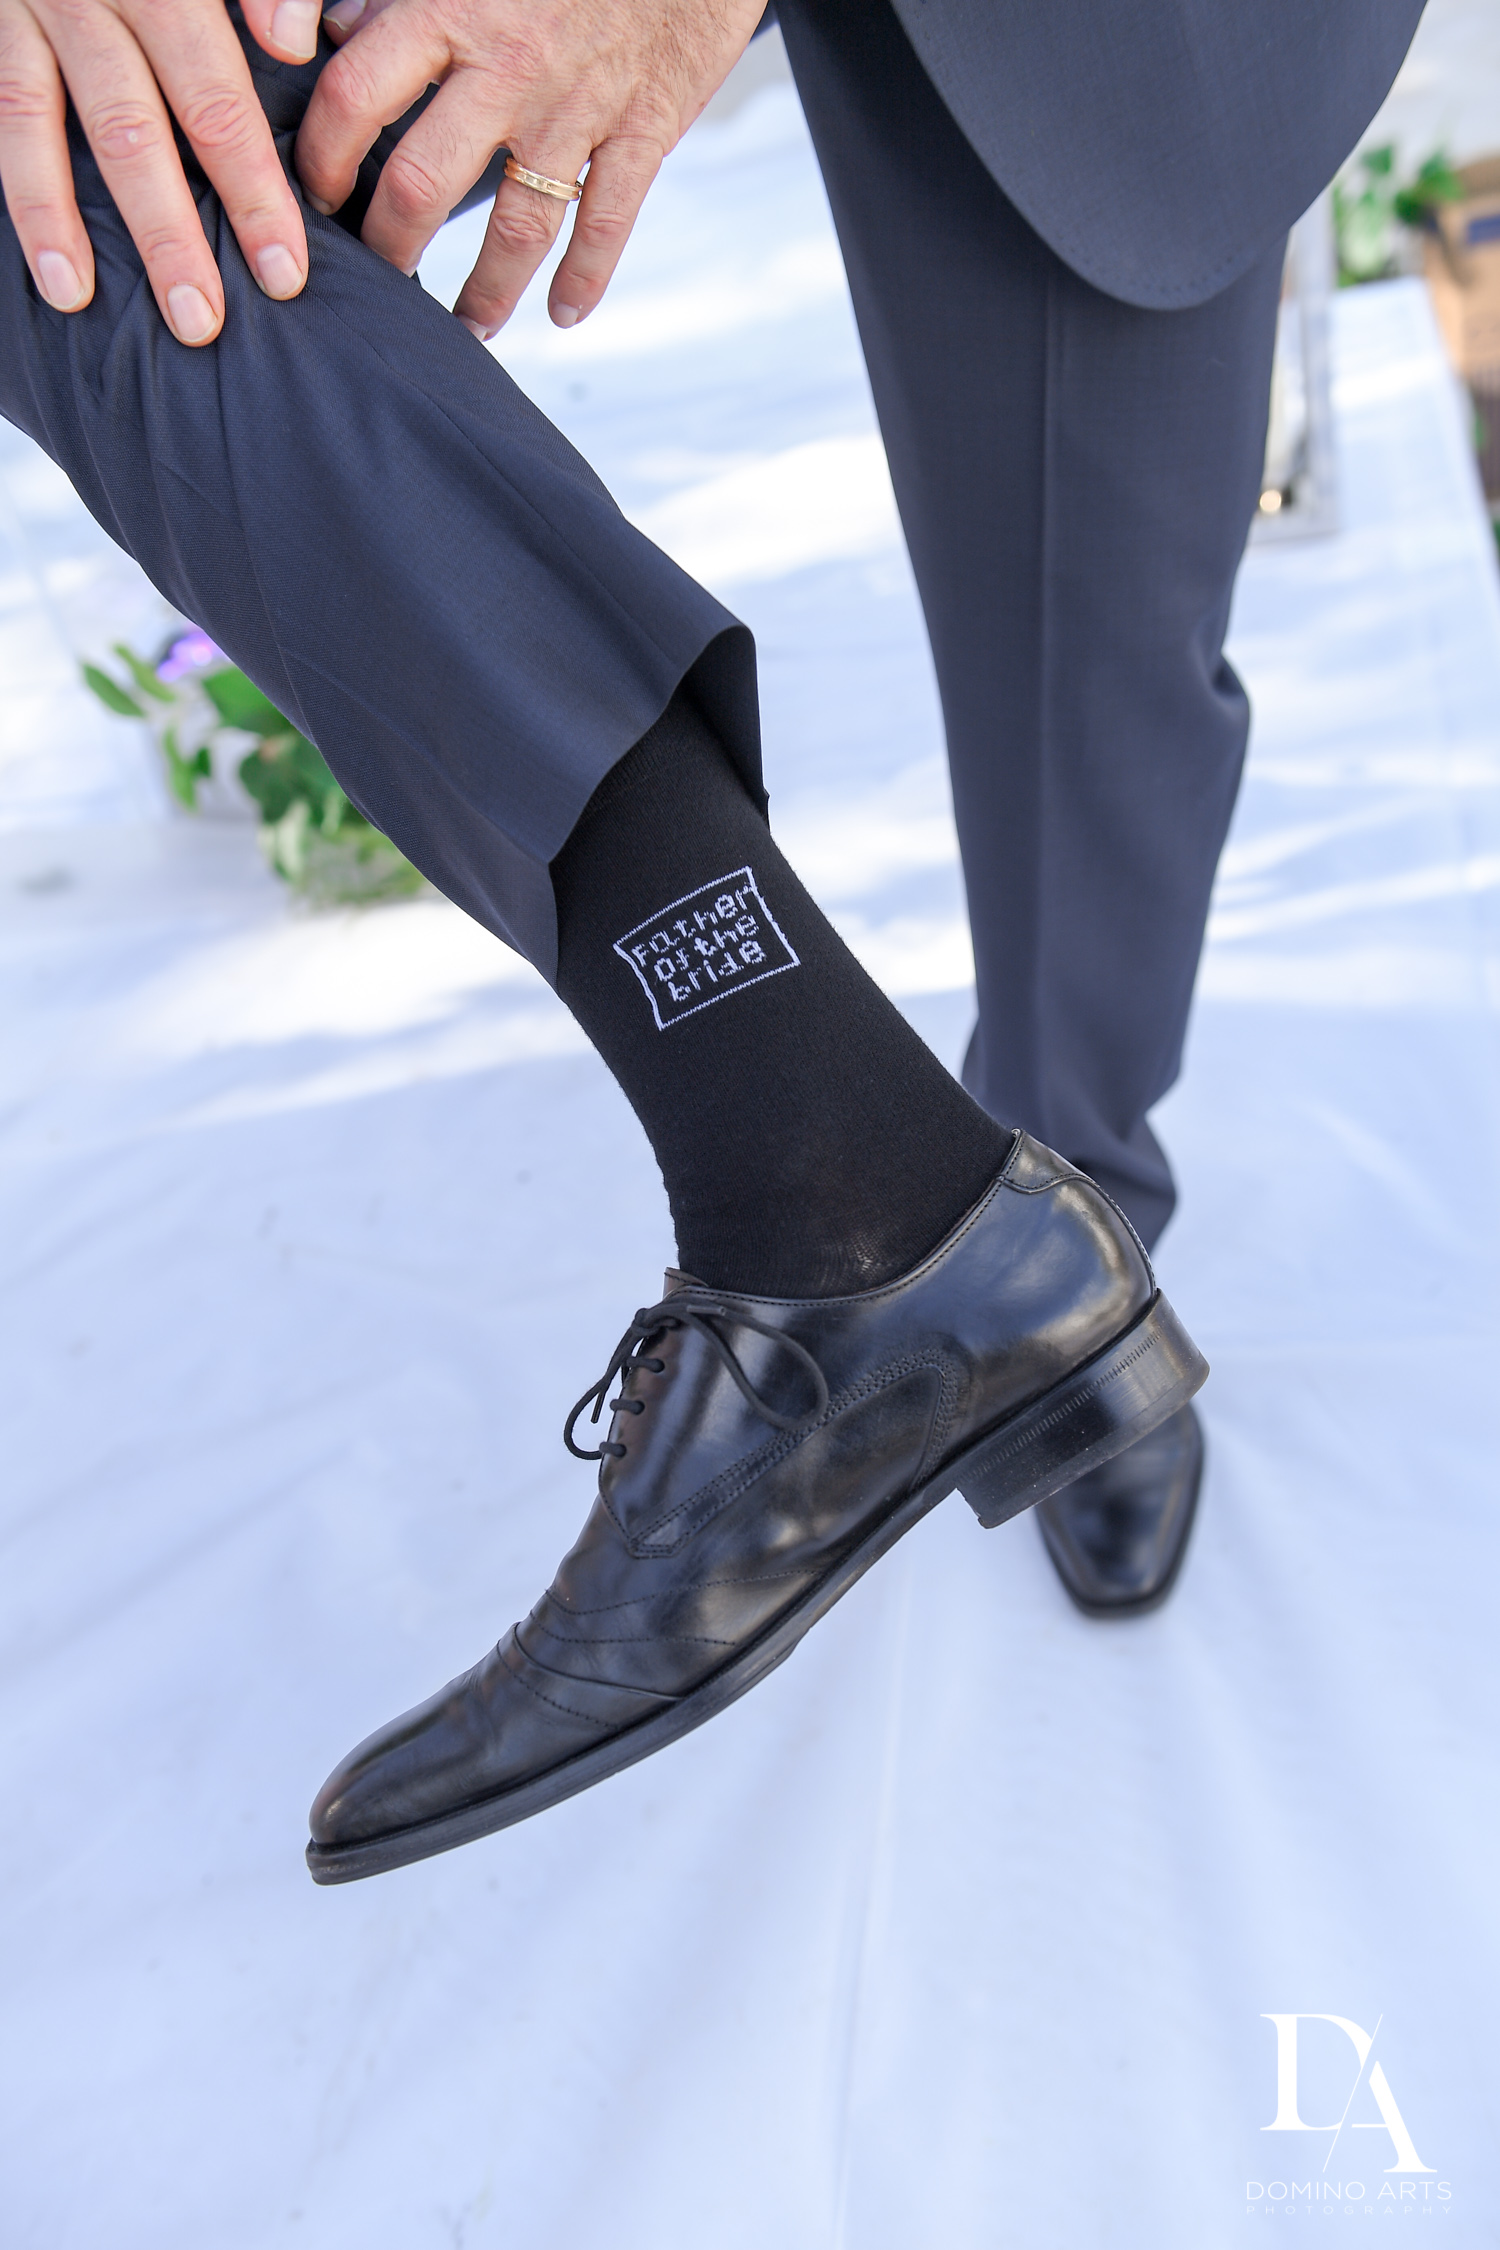 personalized socks at Fairy-Tale Wedding at BNai Torah Boca Raton by Domino Arts Photography